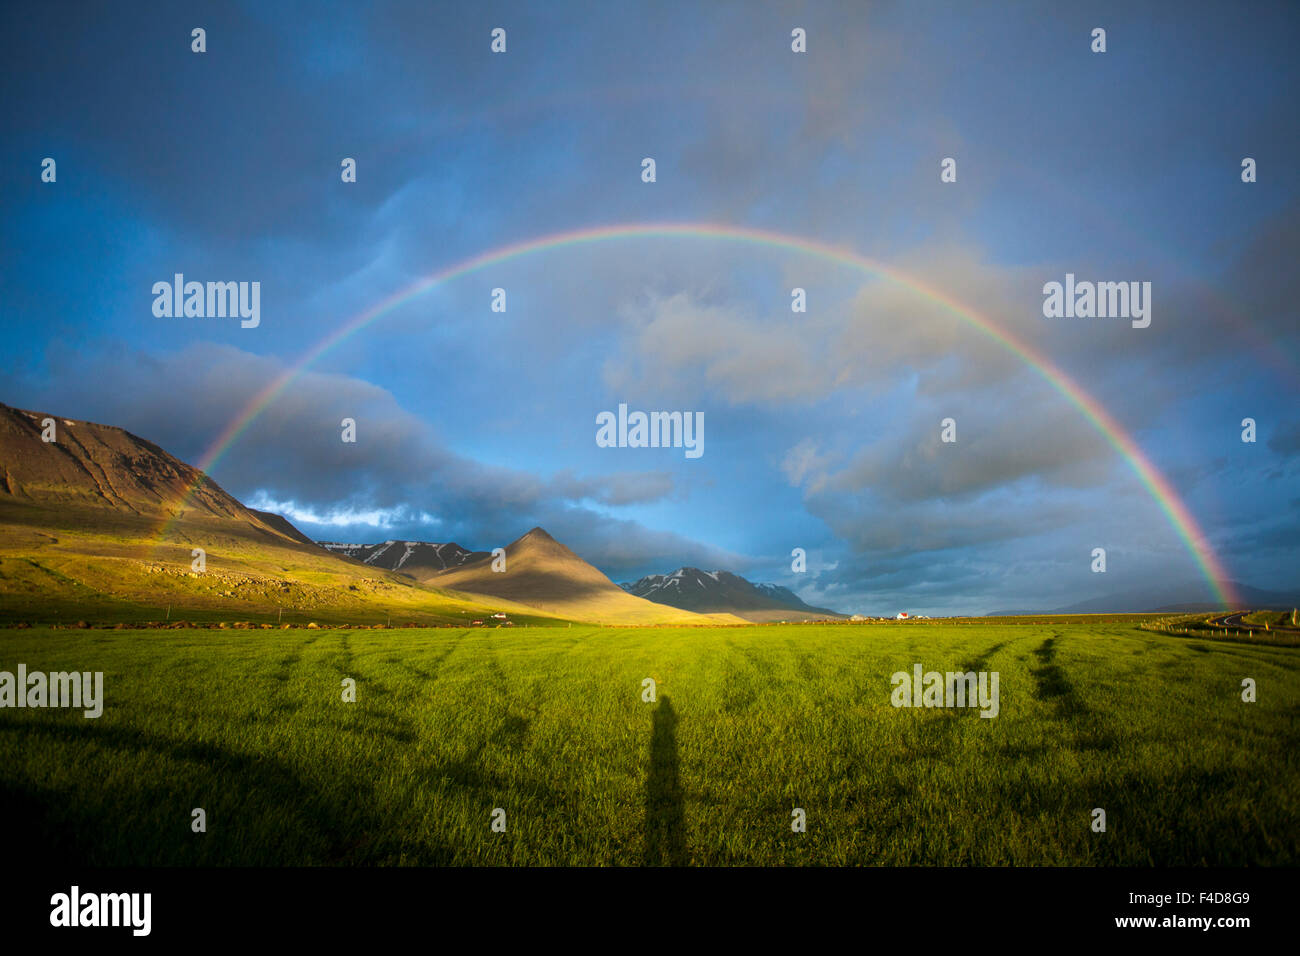 Evening rainbow over the Heradsvotn valley, Skagafjordur, Nordhurland Vestra, Iceland. Stock Photo